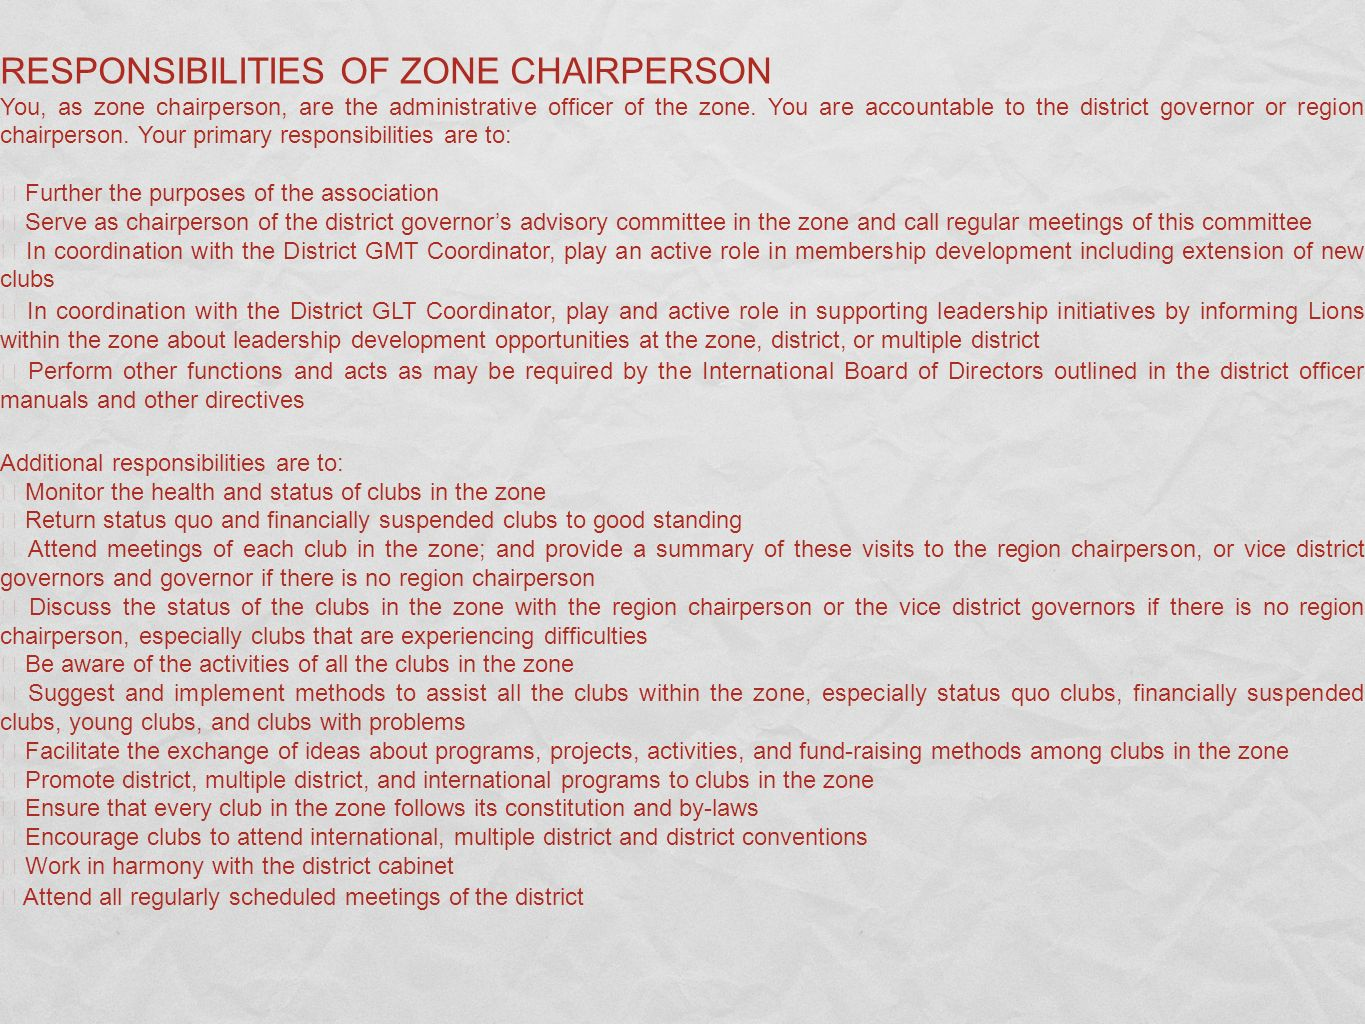 RESPONSIBILITIES OF ZONE CHAIRPERSON You, as zone chairperson, are the administrative officer of the zone.